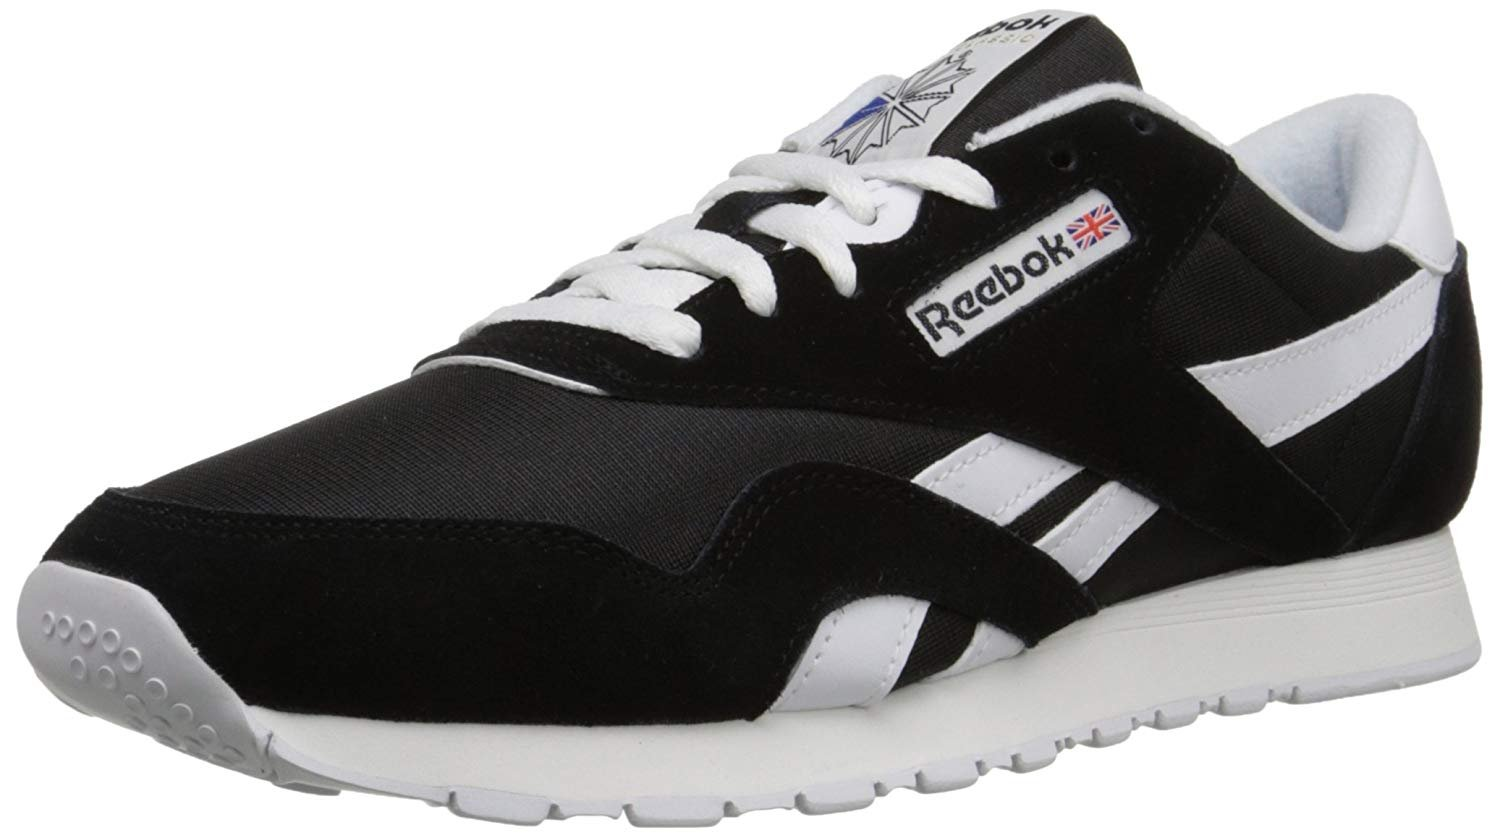 be098ca9b Image is loading Reebok-Men-039-s-CL-NYLON-Classic-Sneaker